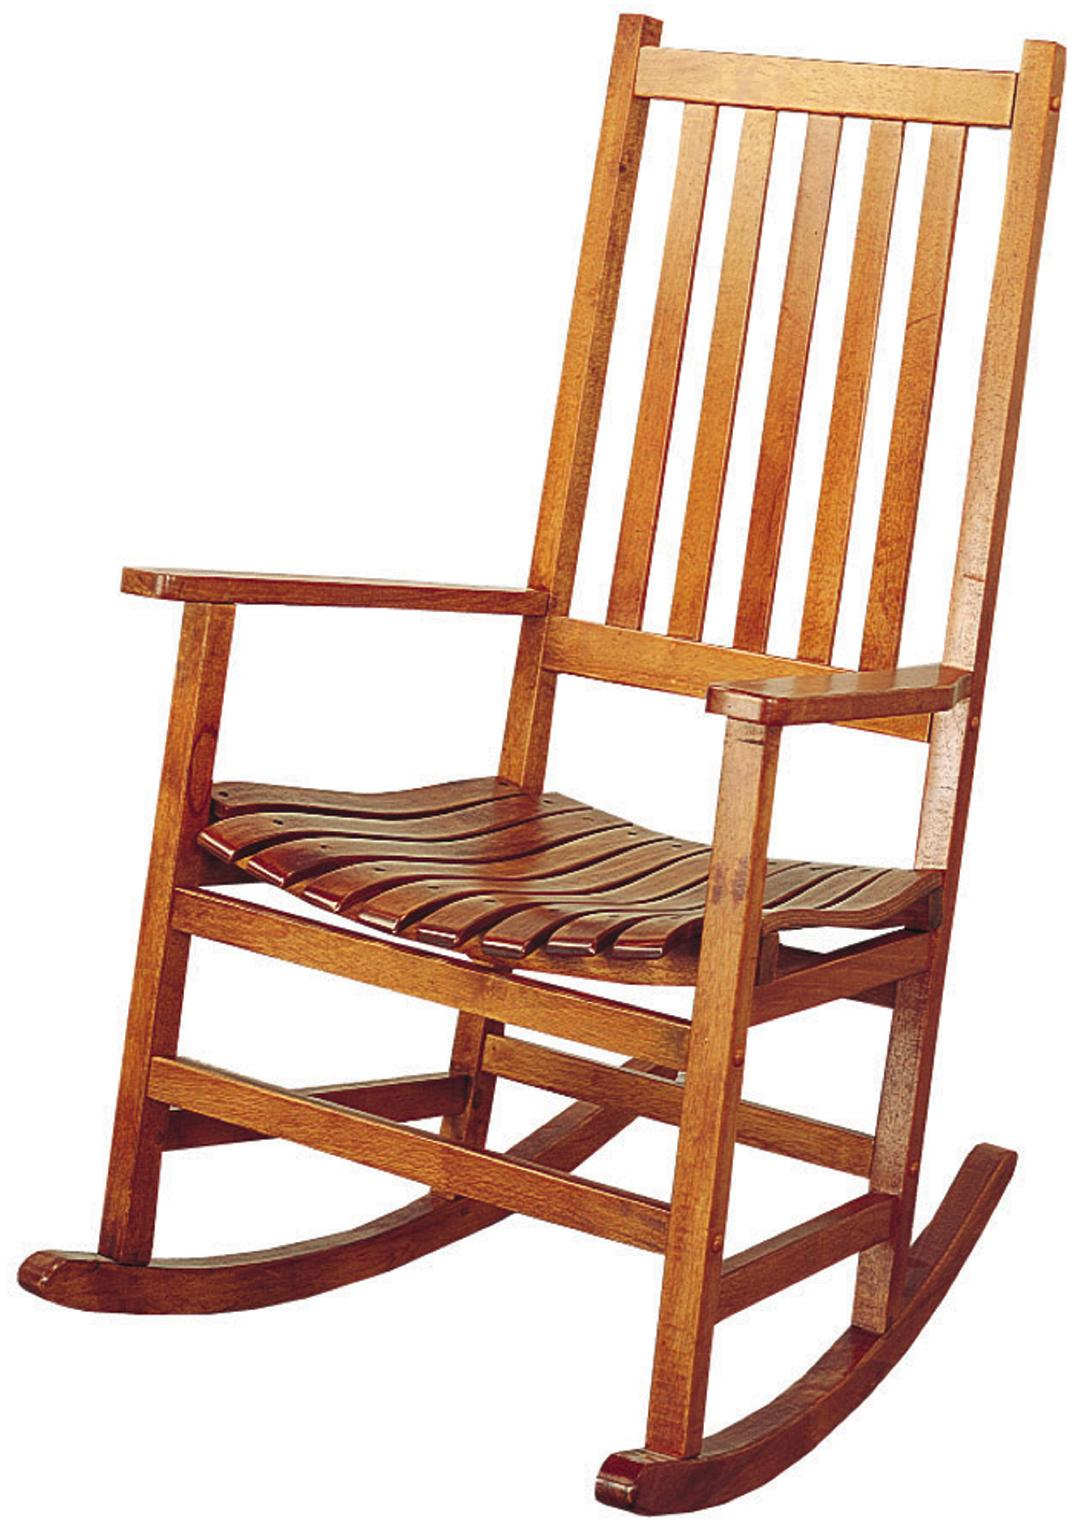 Wooden Chairs Free Rocking Chair Cliparts Download Free Clip Art Free